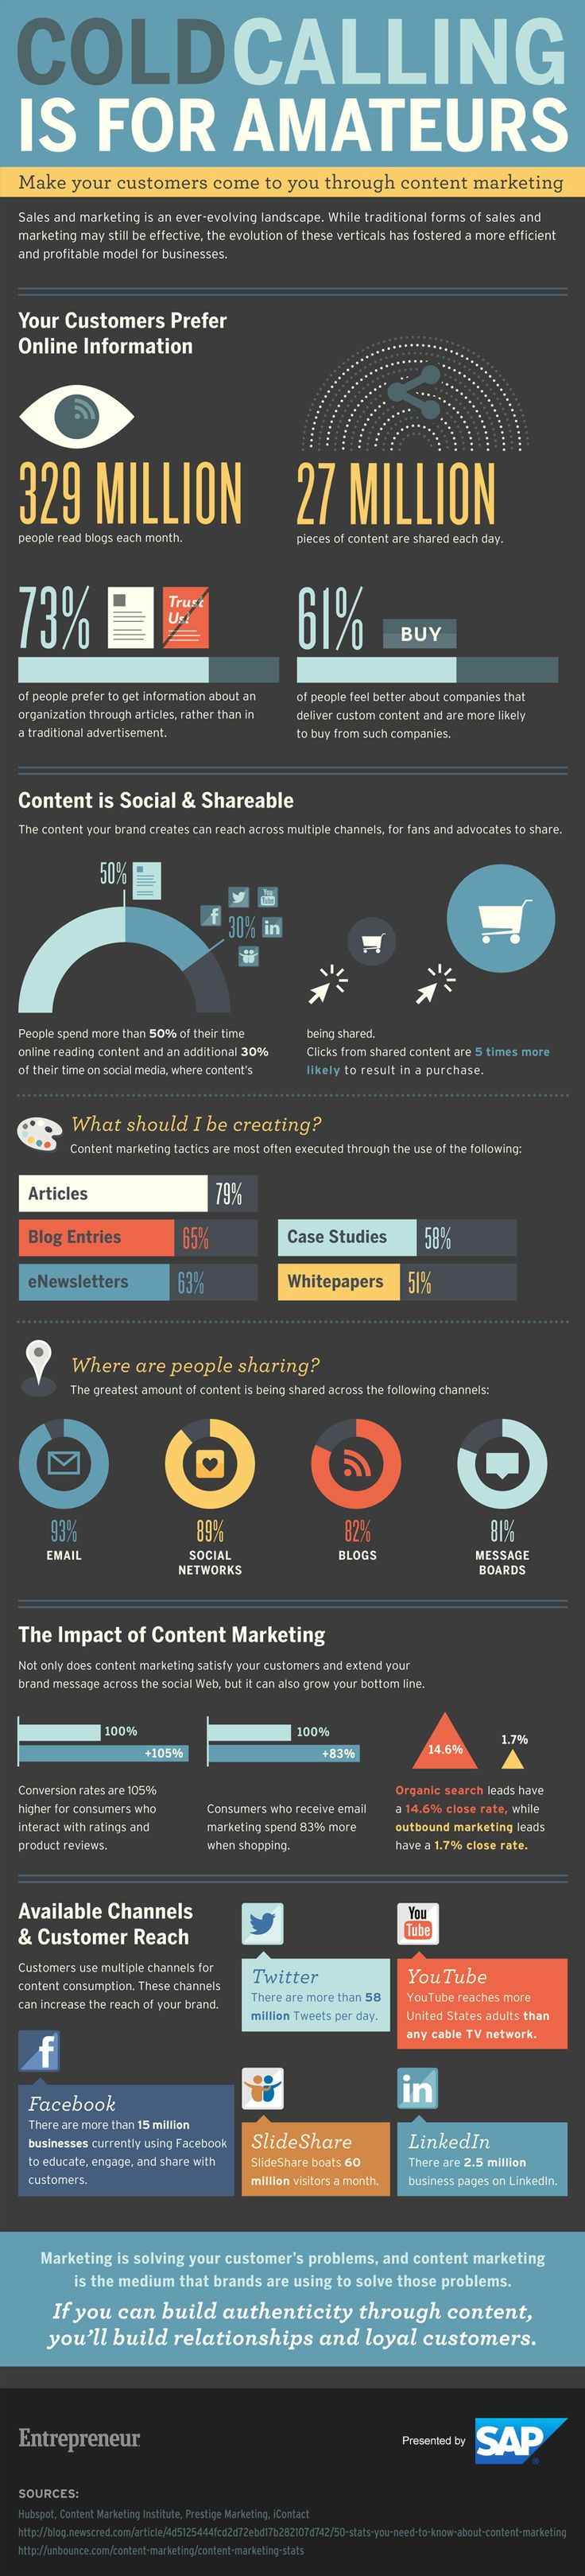 Why Storytelling Is the Secret to Getting Noticed Online #content #marketing #INFOGRAPHIC